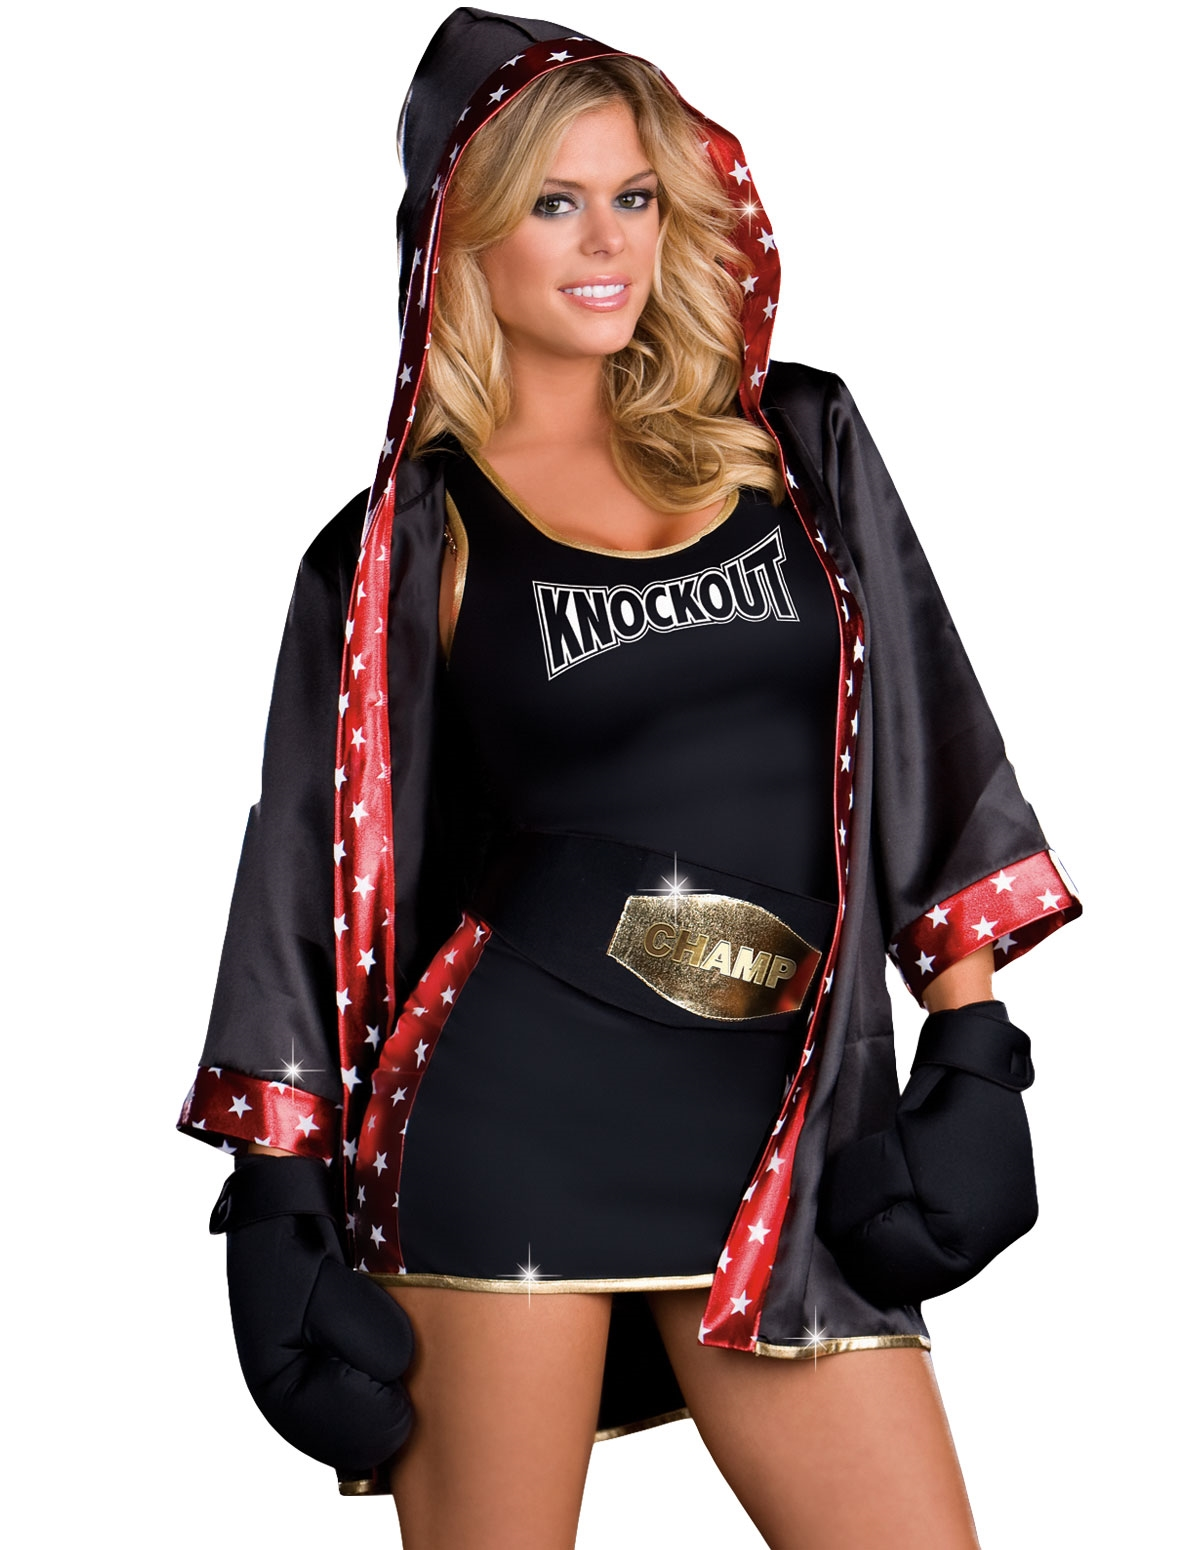 Dreamgirl Knockout Costume